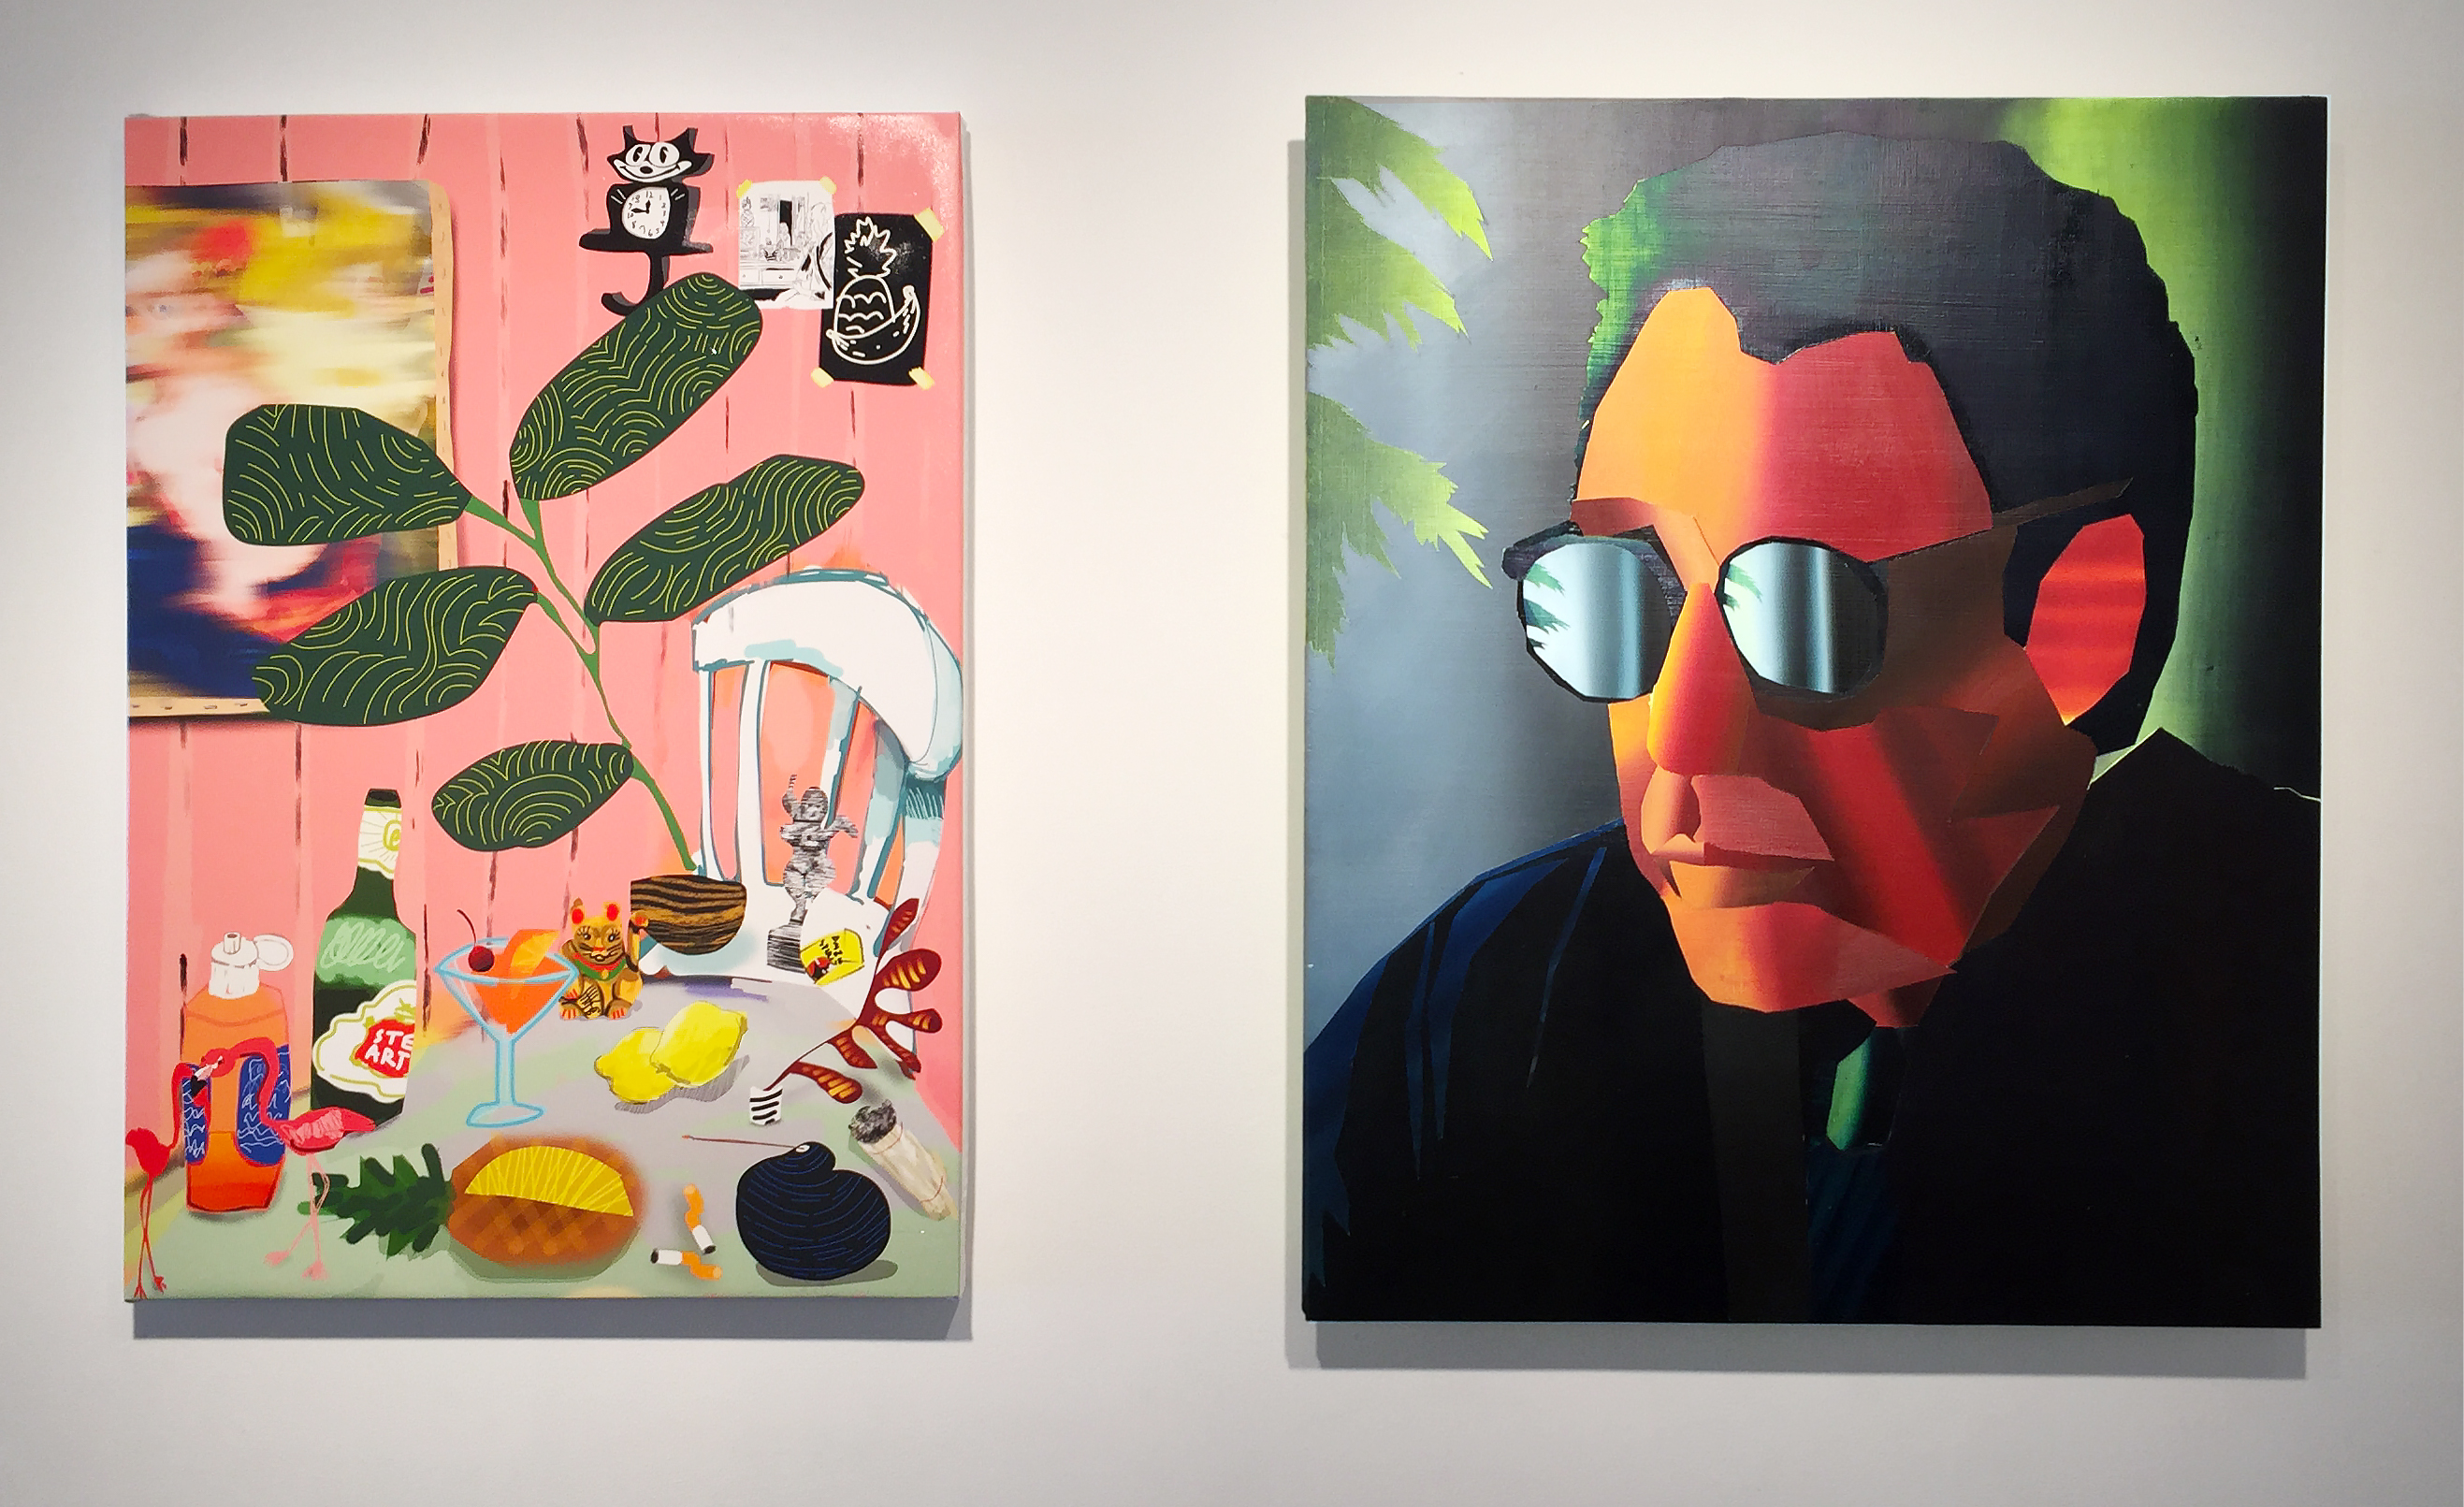 """Emulator"", Canyon Castator (left image) and Jonathan Chapline (right image), install view at Gallery 151, New York, 2016"